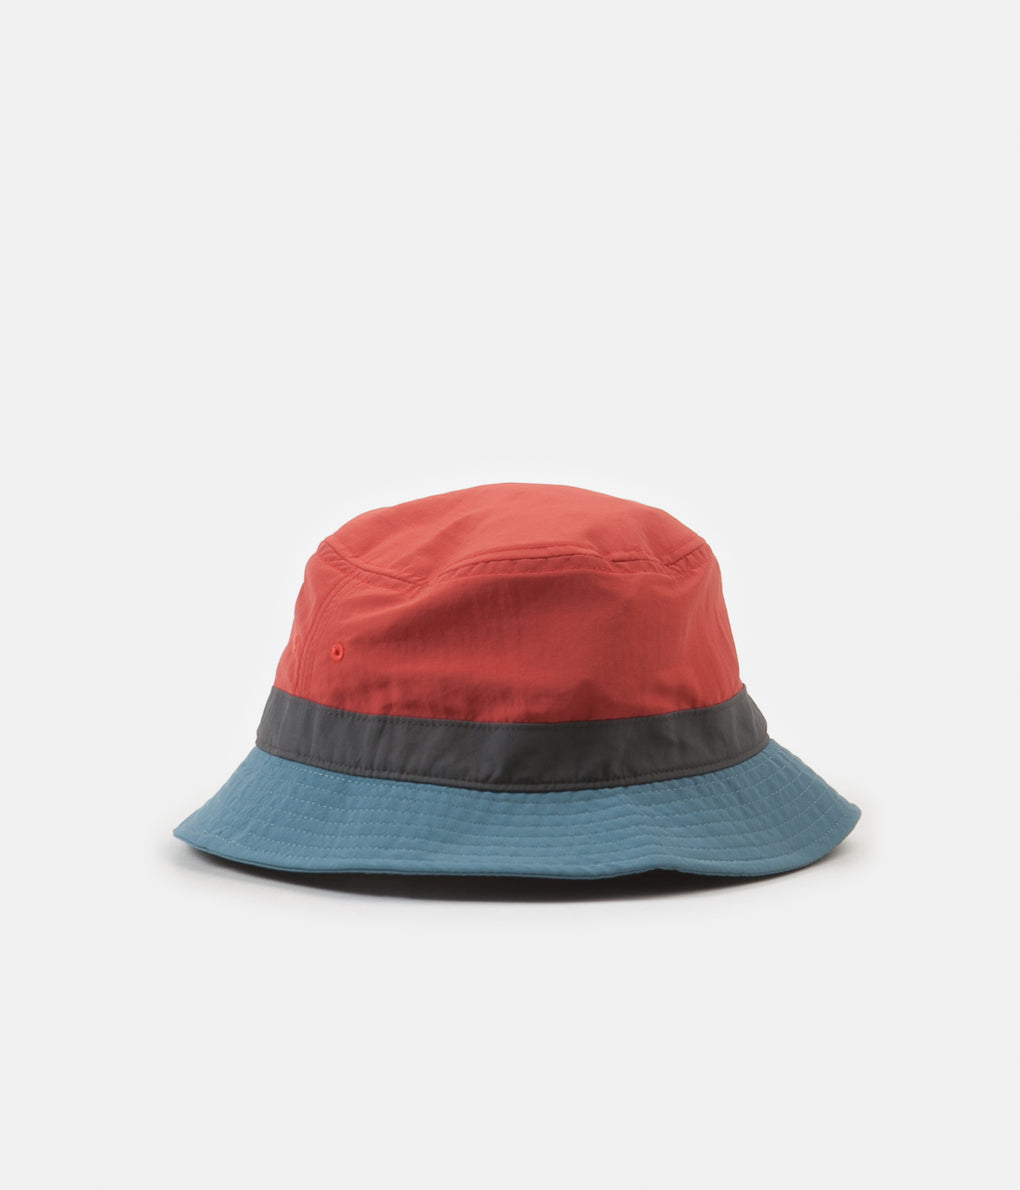 Patagonia Wavefarer Bucket Hat - New Adobe